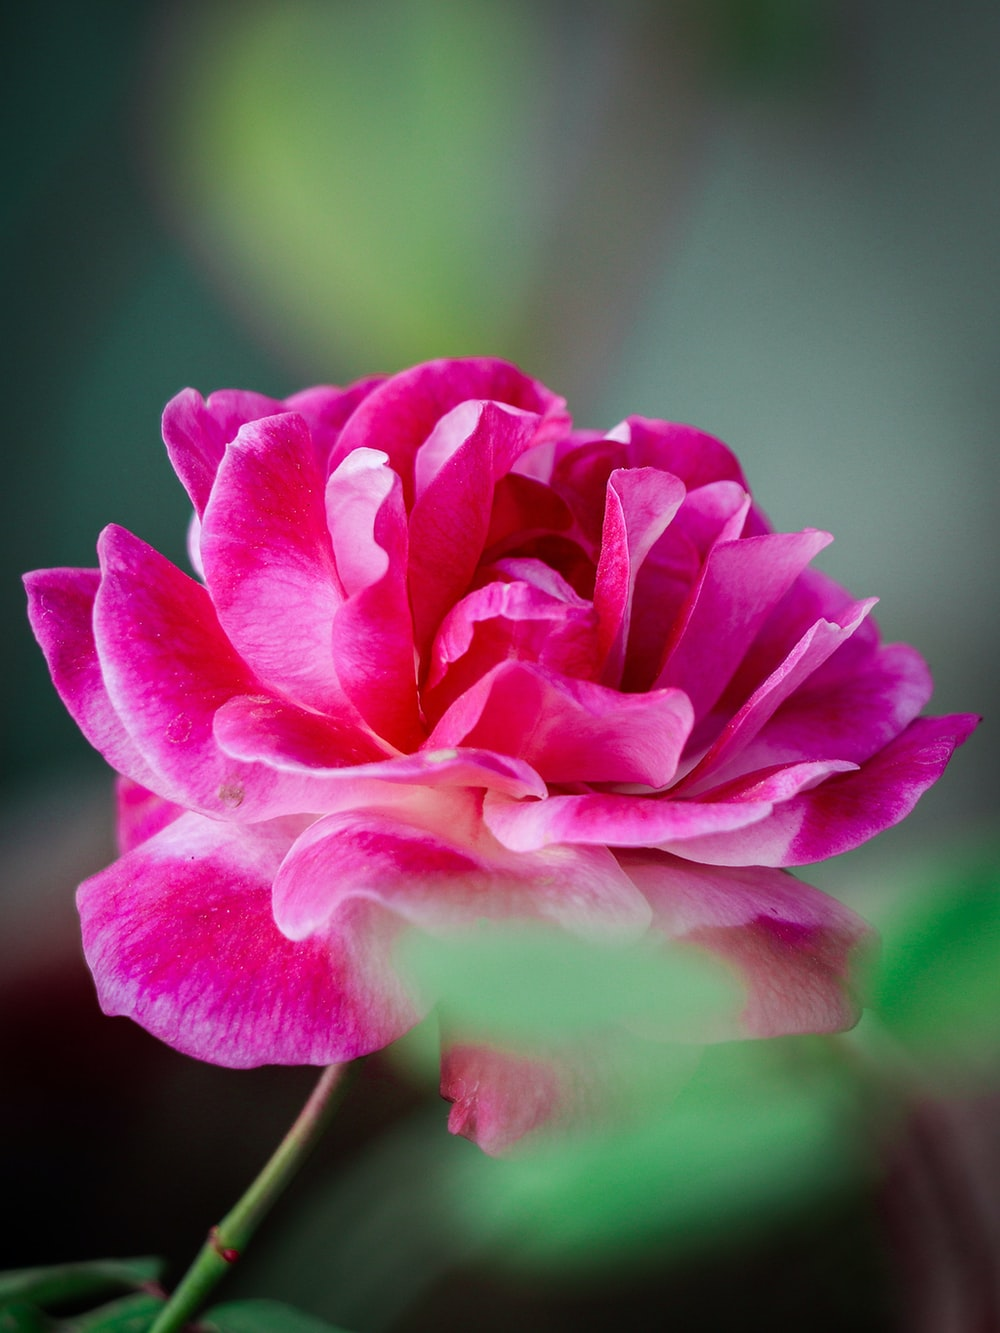 pink flower in tilt shift lens